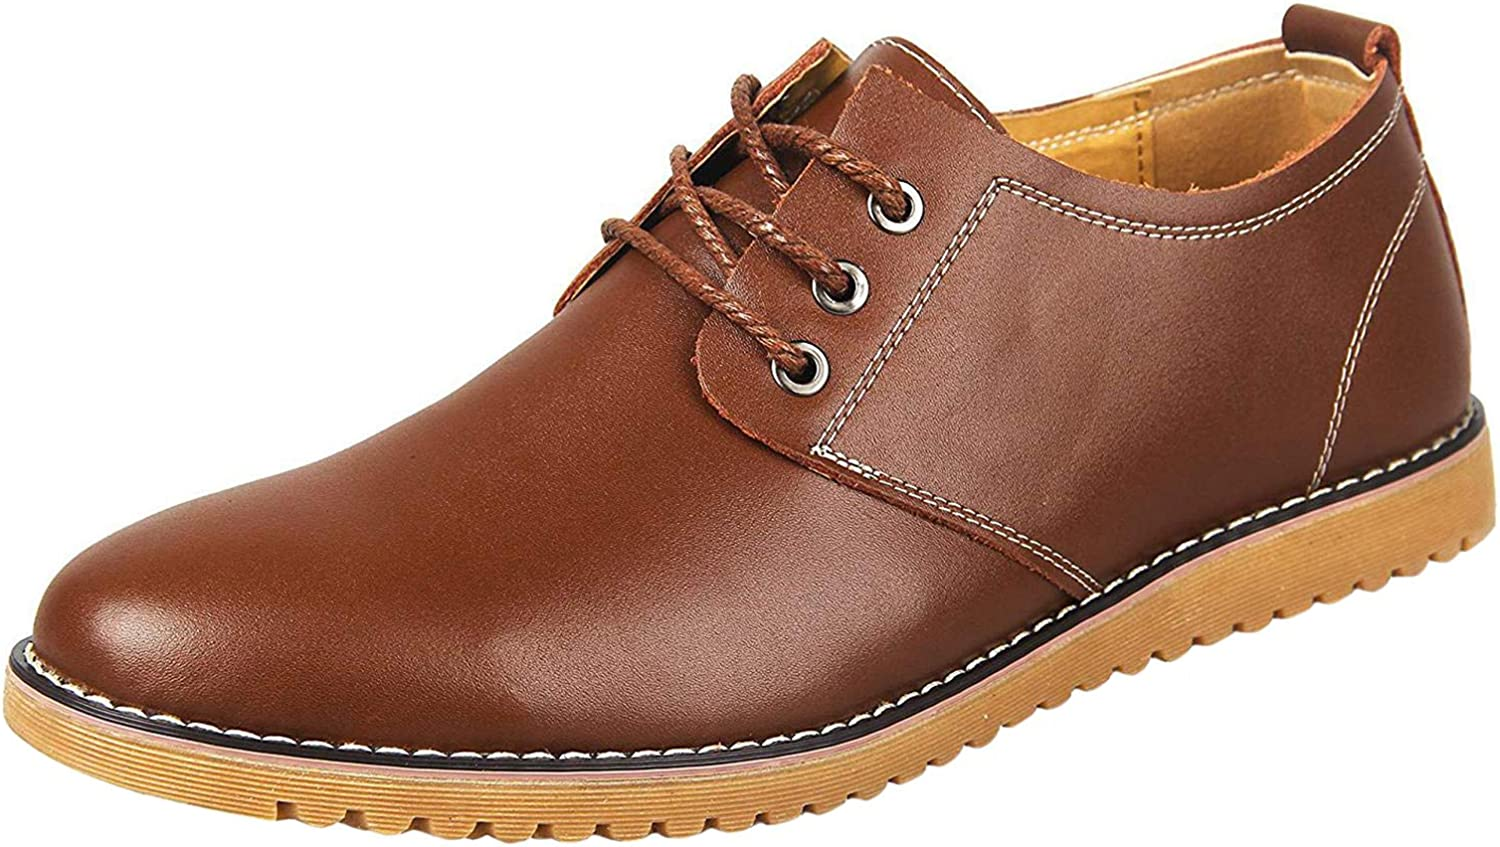 PPXID Men's Formal Dress Casual Lace-up Oxfords Leather Shoes